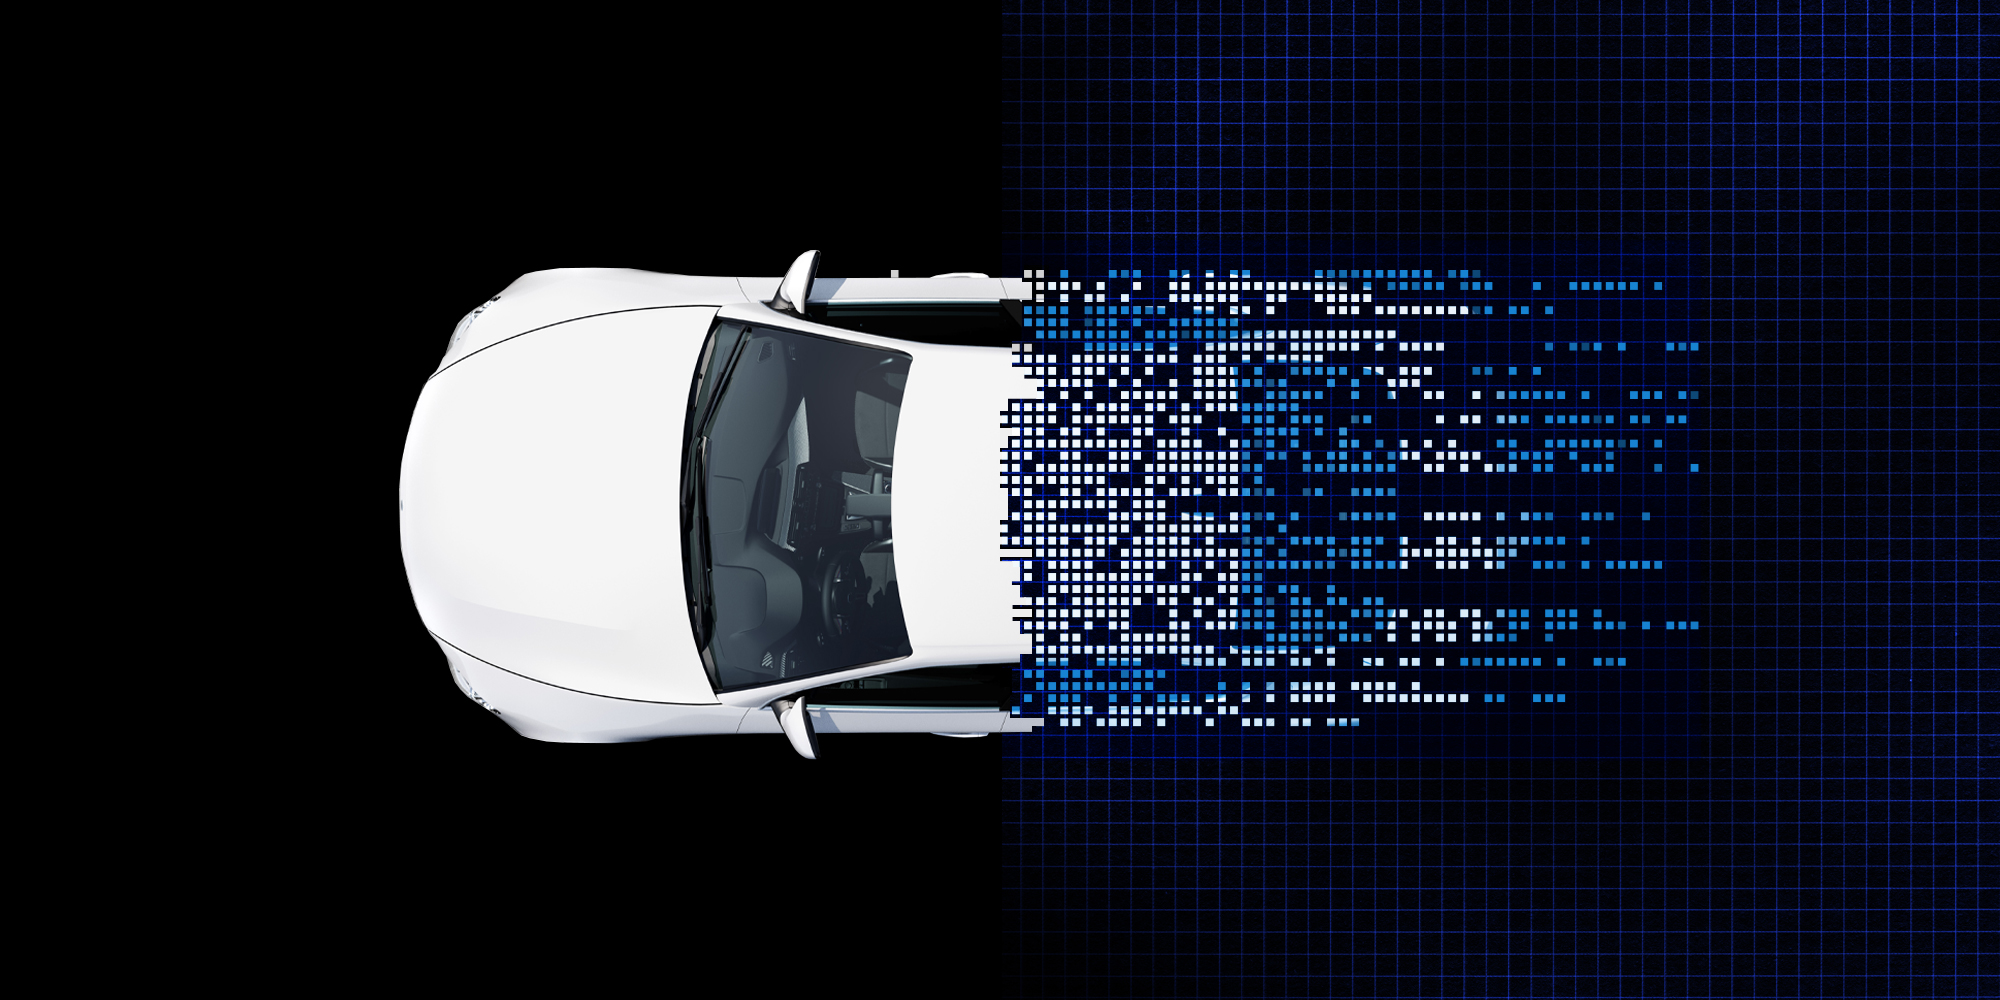 your car is spying on you